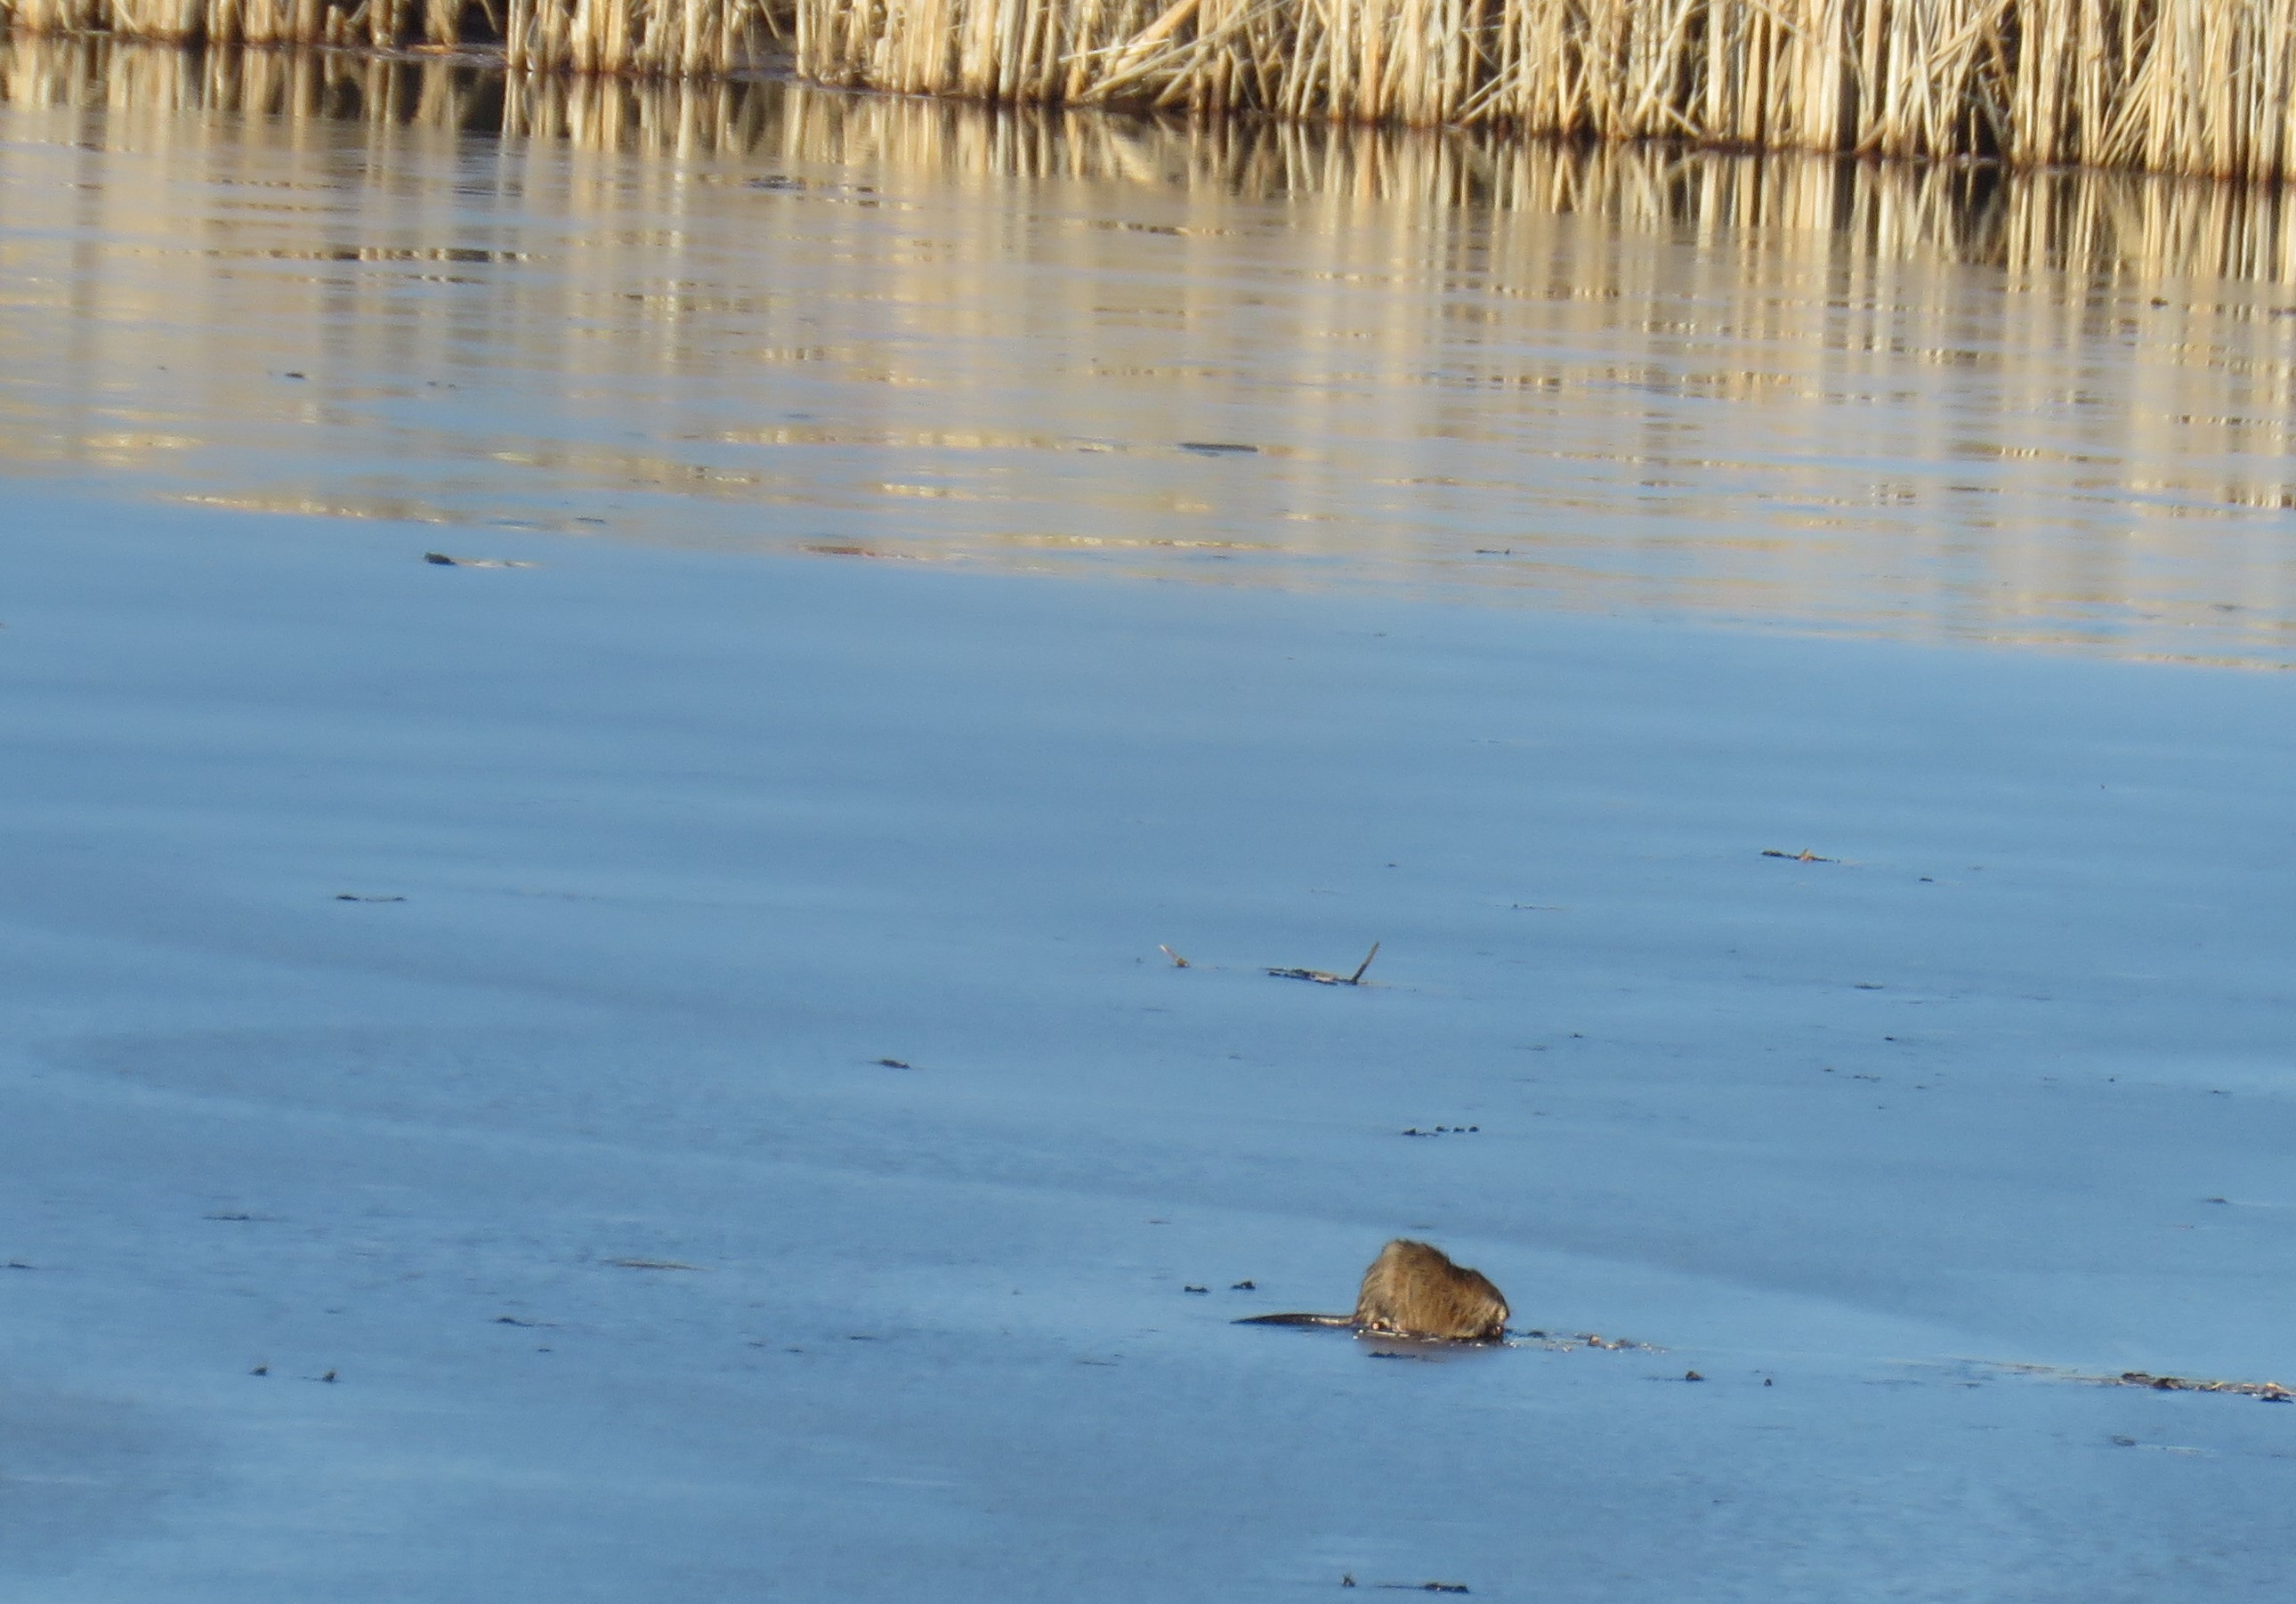 A muskrat on lake ice. Weeds grow behind it at the lake edge.